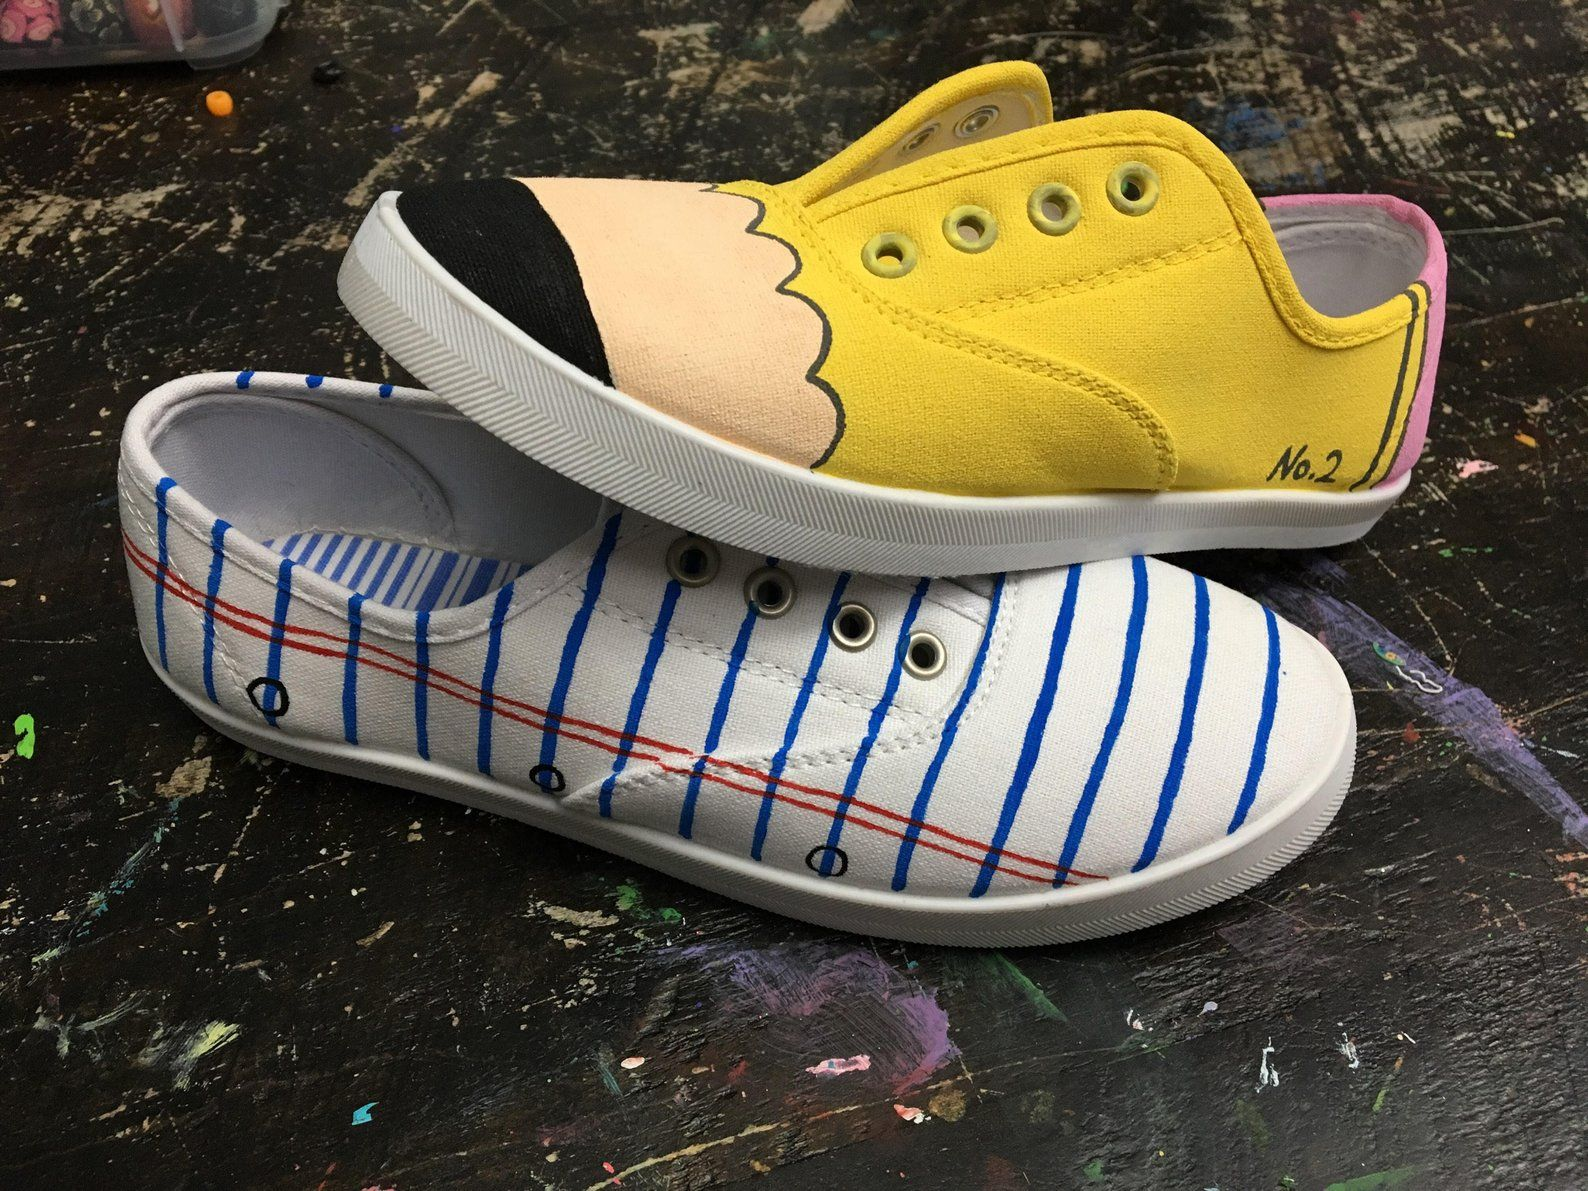 Pencil and paper handpainted shoes #teachergifts